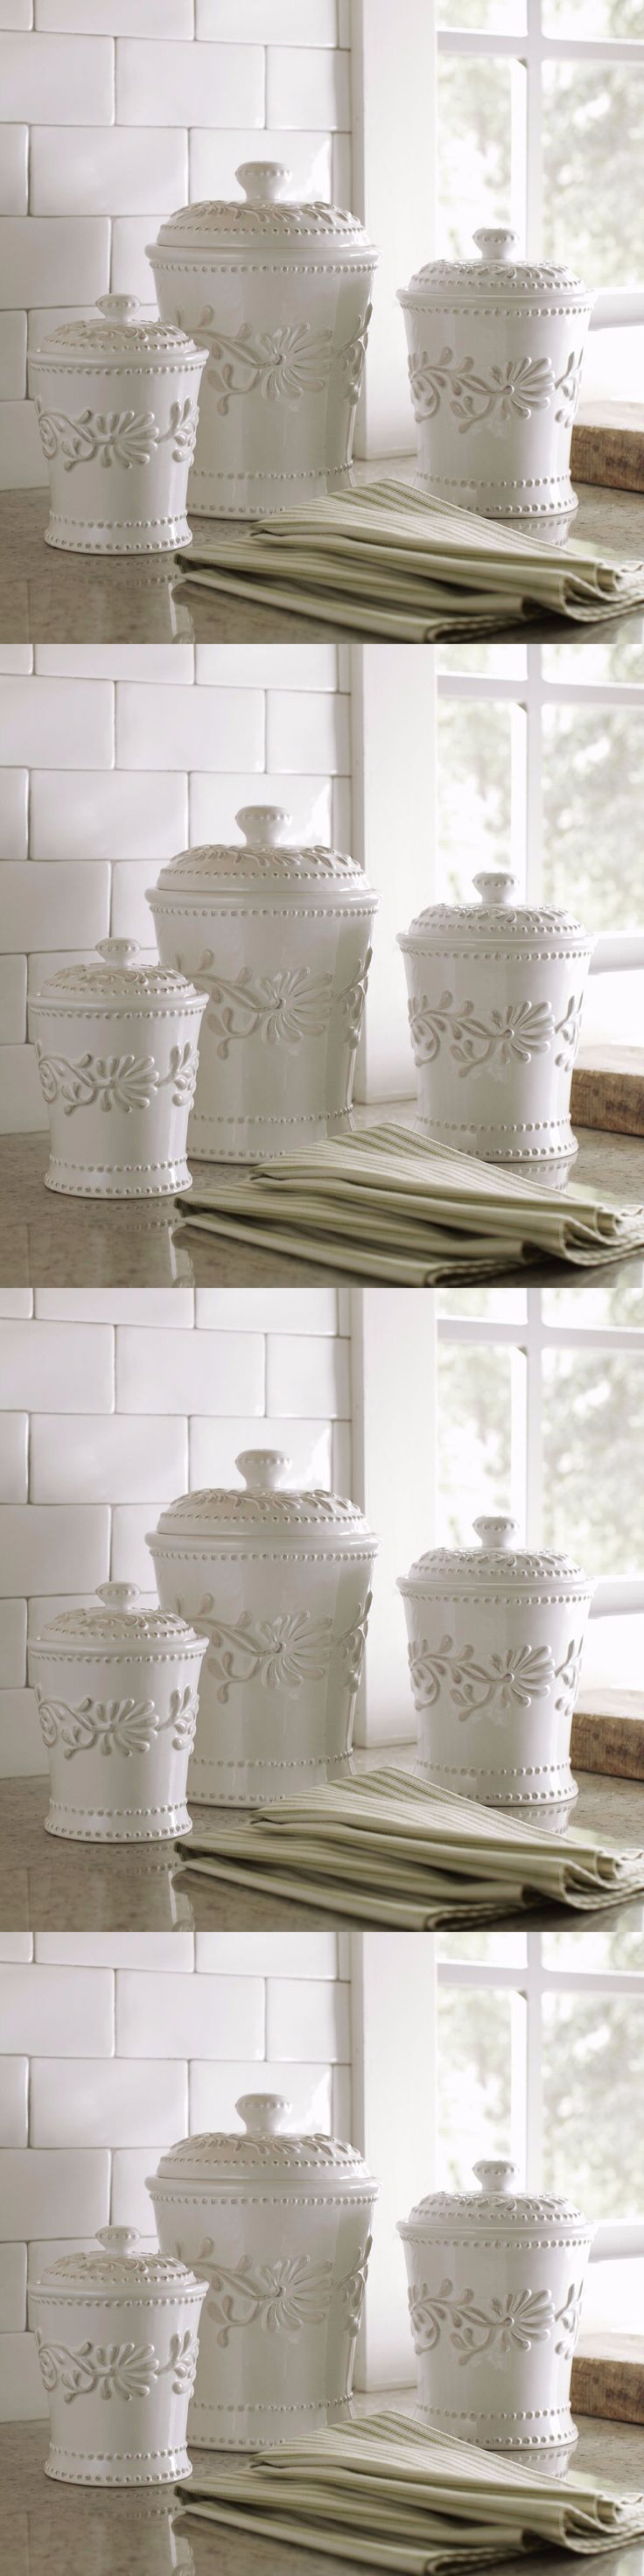 Canisters and Jars 20654: Ceramic Kitchen Canister Set White Ivory Counter Coffee Sugar Flour Canisters 3 -> BUY IT NOW ONLY: $56.95 on eBay!